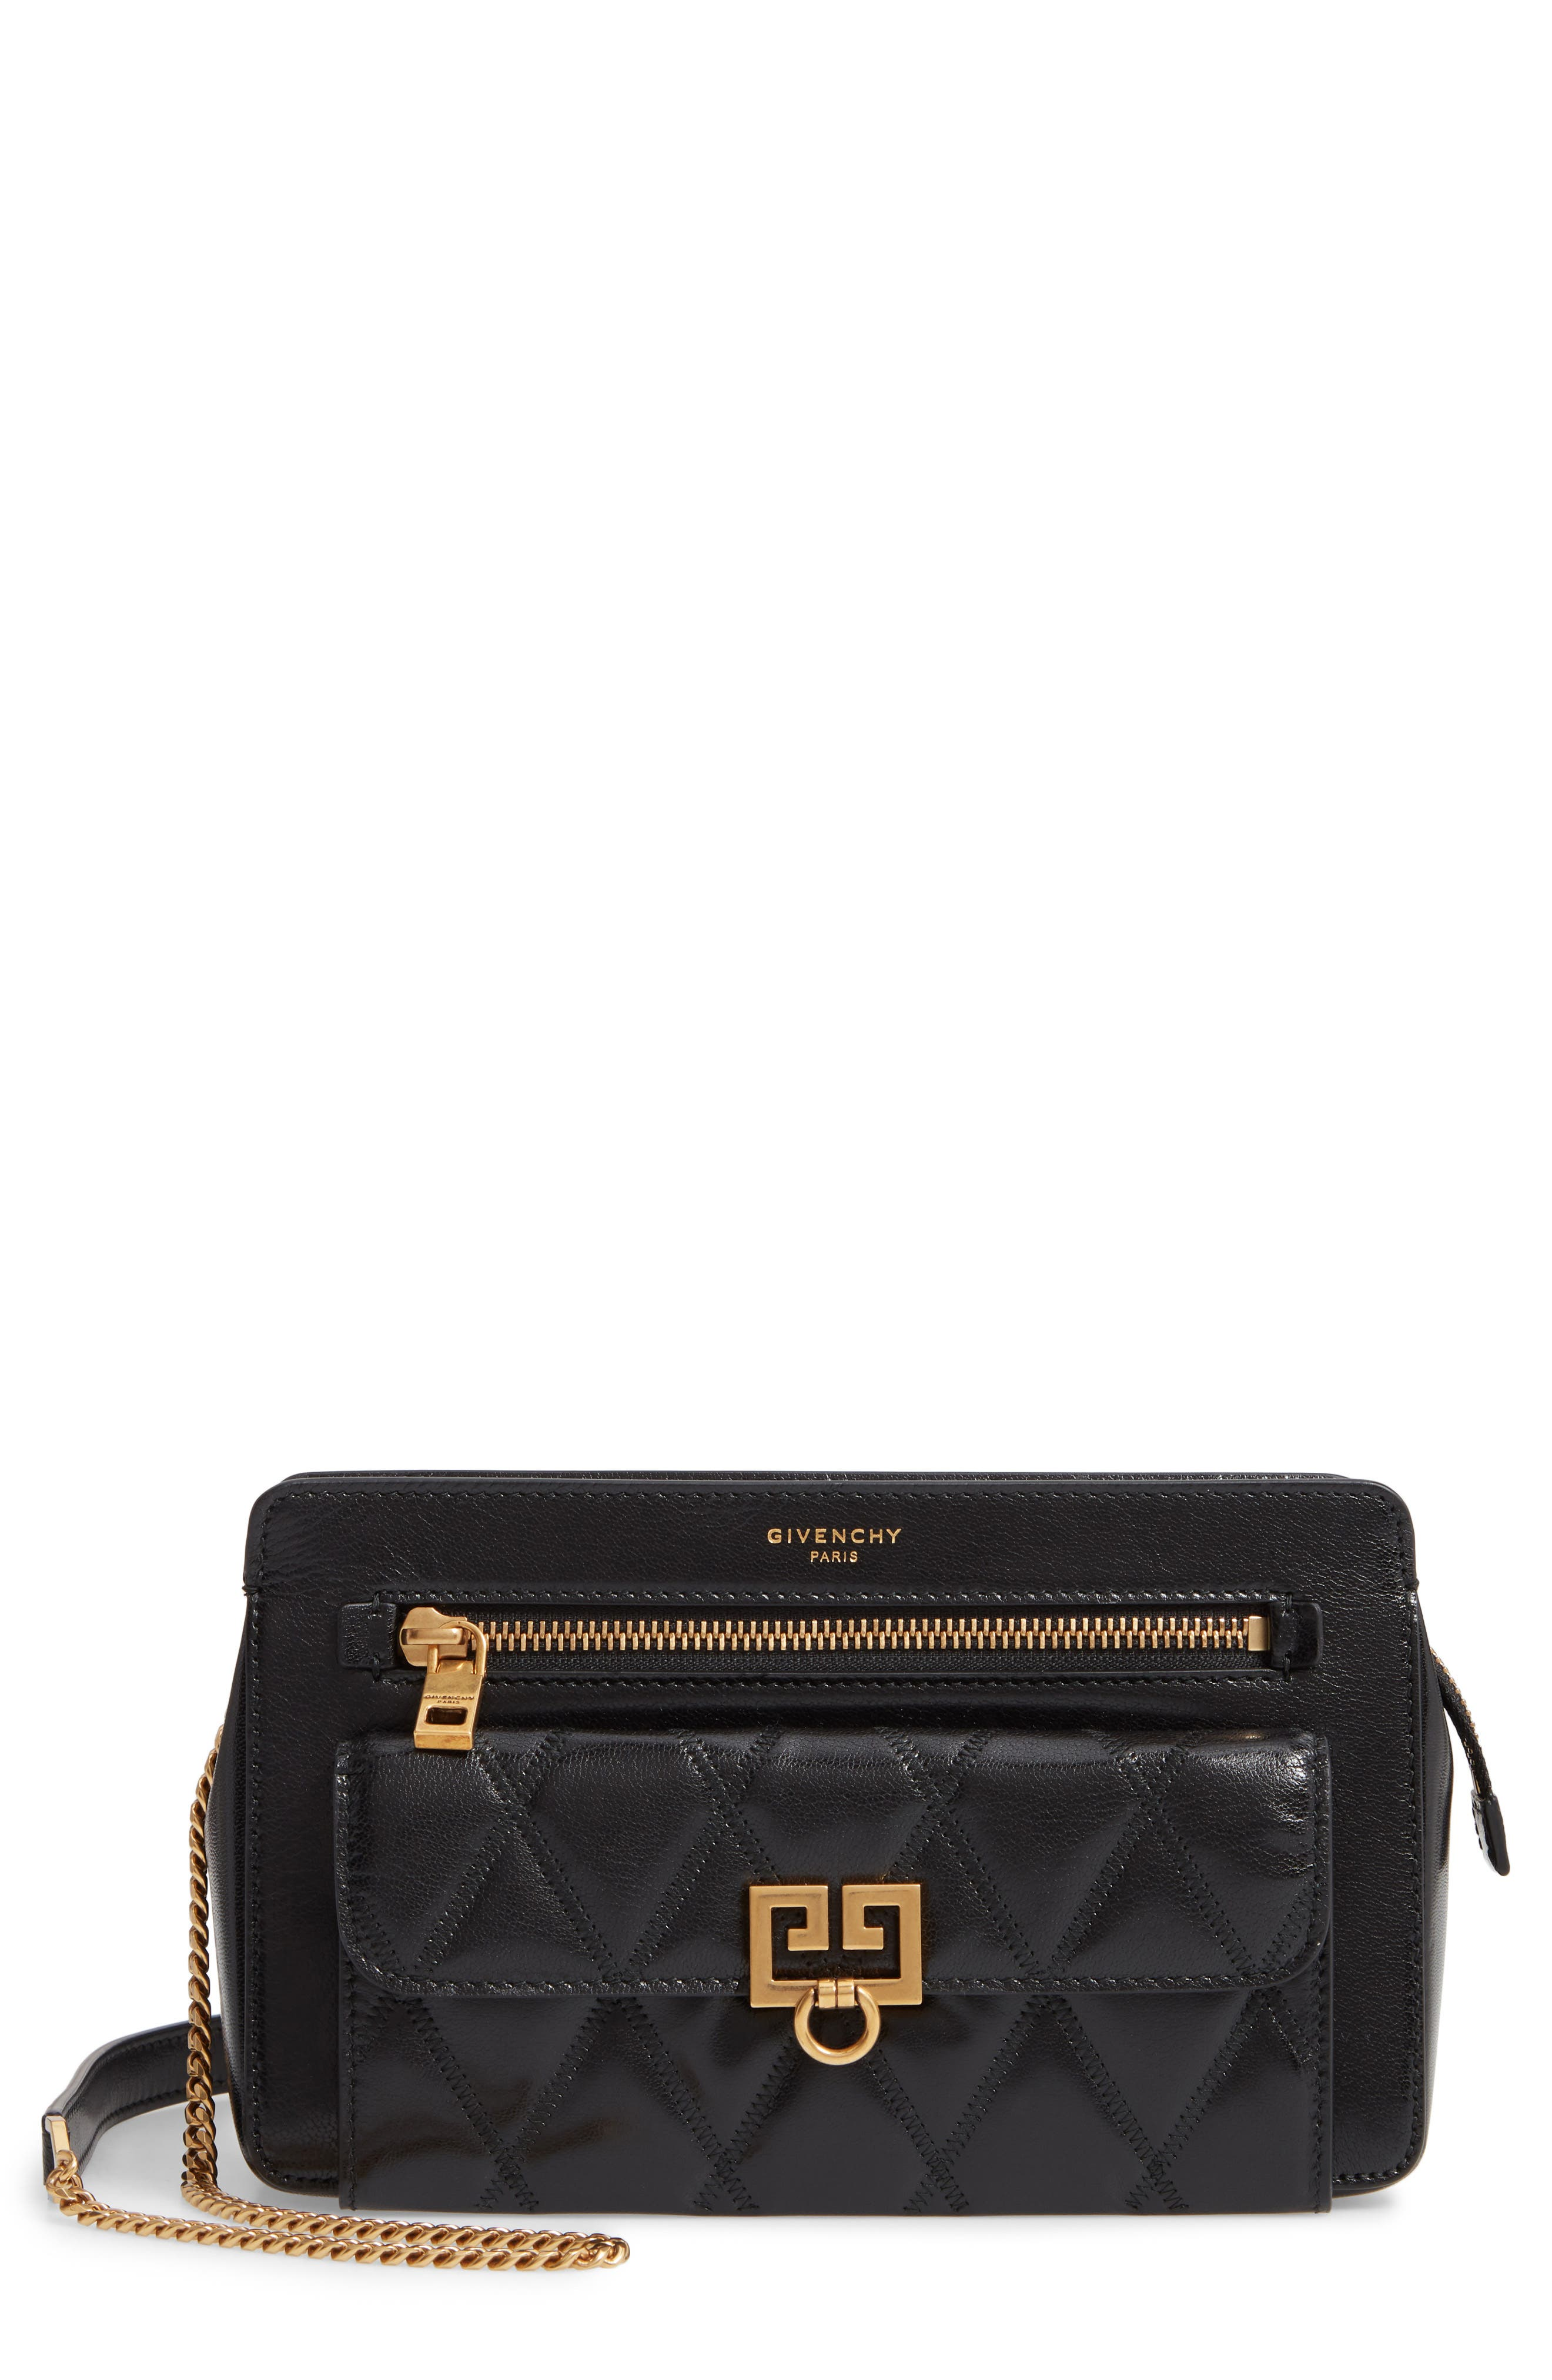 Diamond Quilted Leather Crossbody Bag,                             Main thumbnail 1, color,                             BLACK